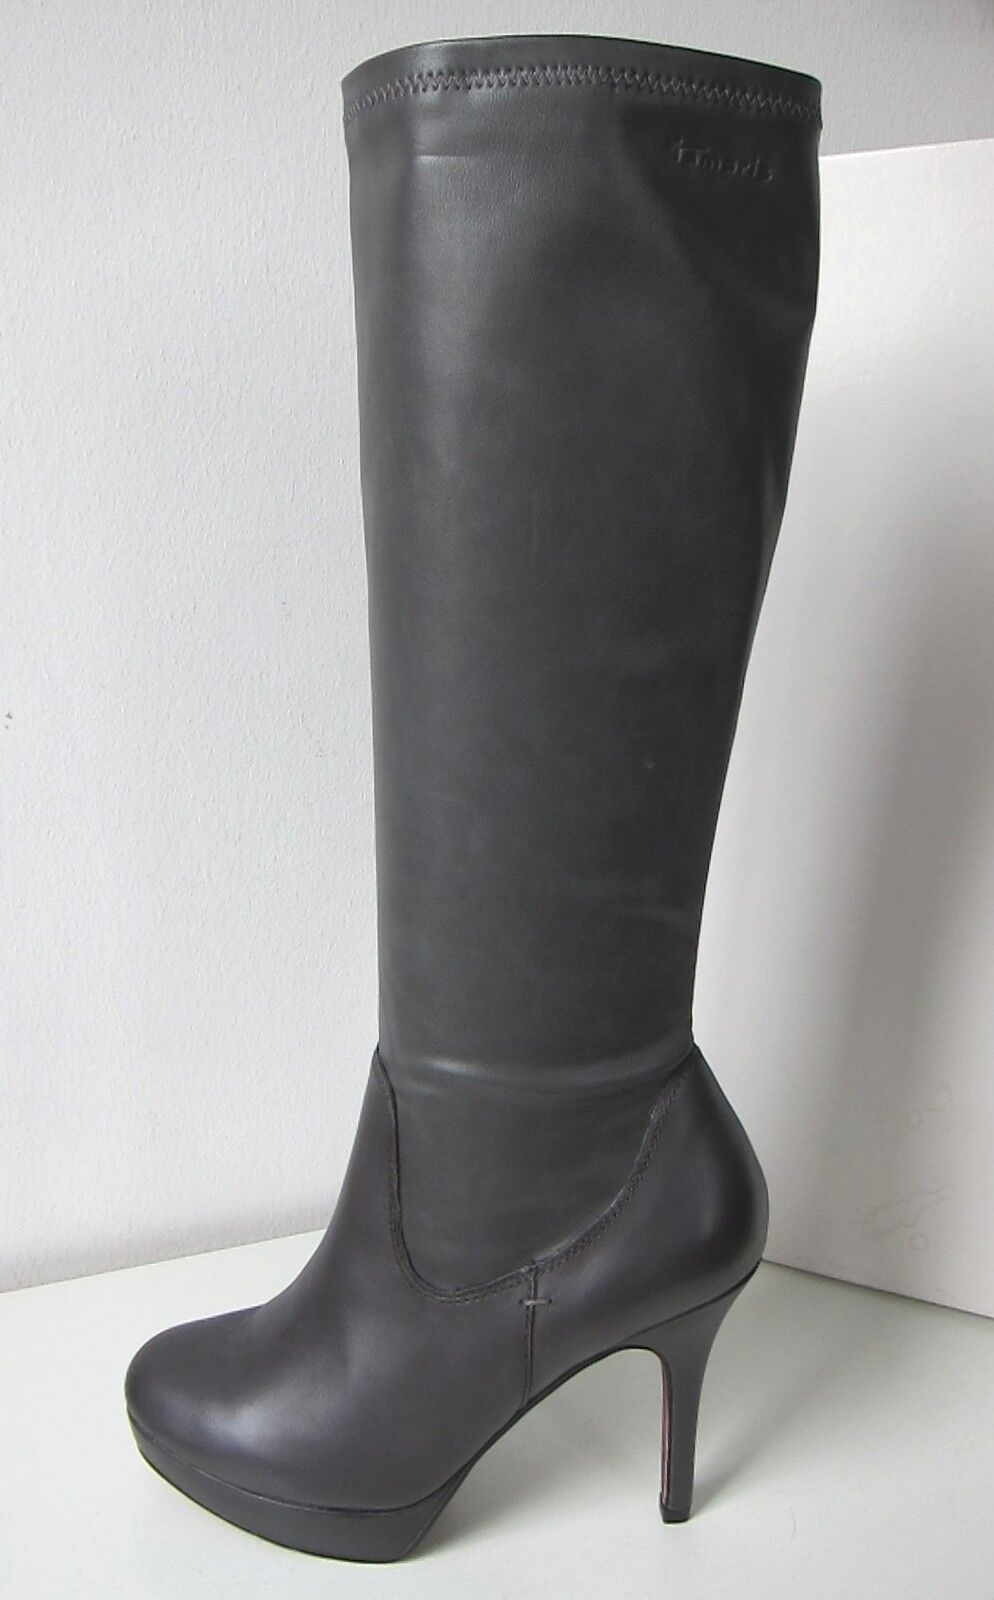 Tamaris Leather Artificial Platform boots grey Size 41 graphite